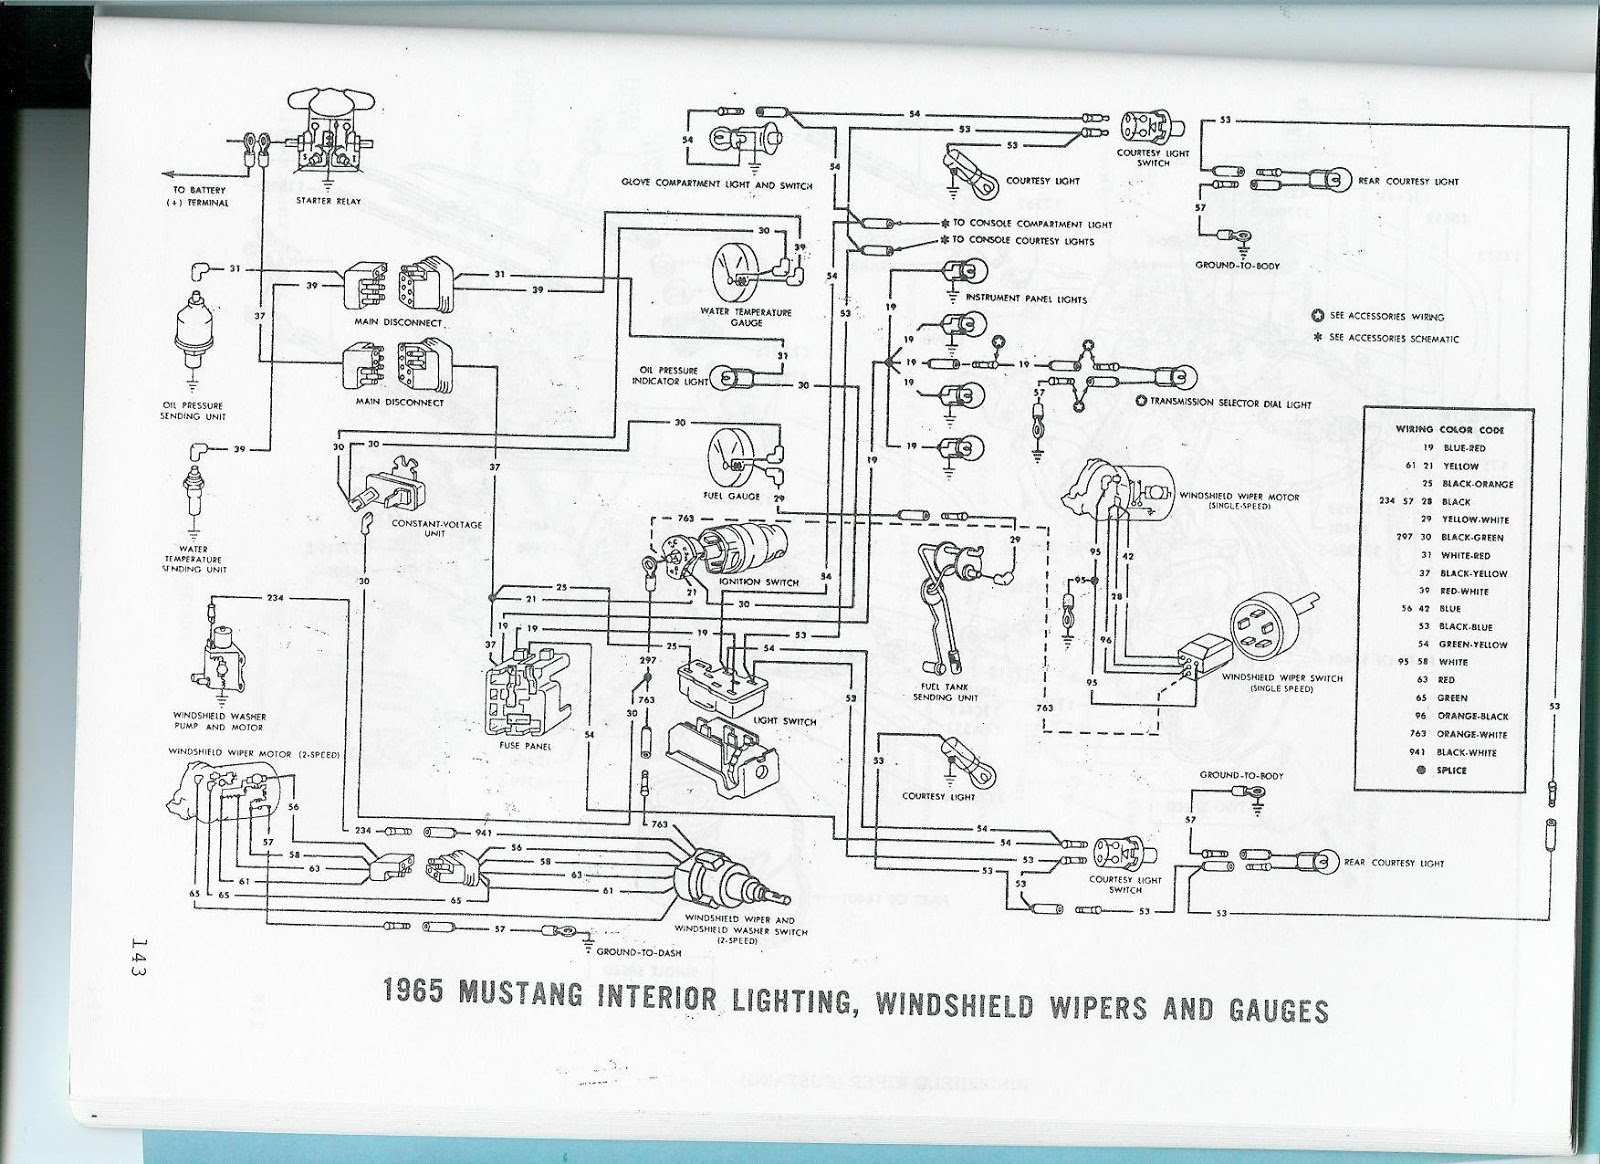 65 mustang wiring diagram manual emg active pj the care and feeding of ponies 1965 diagrams